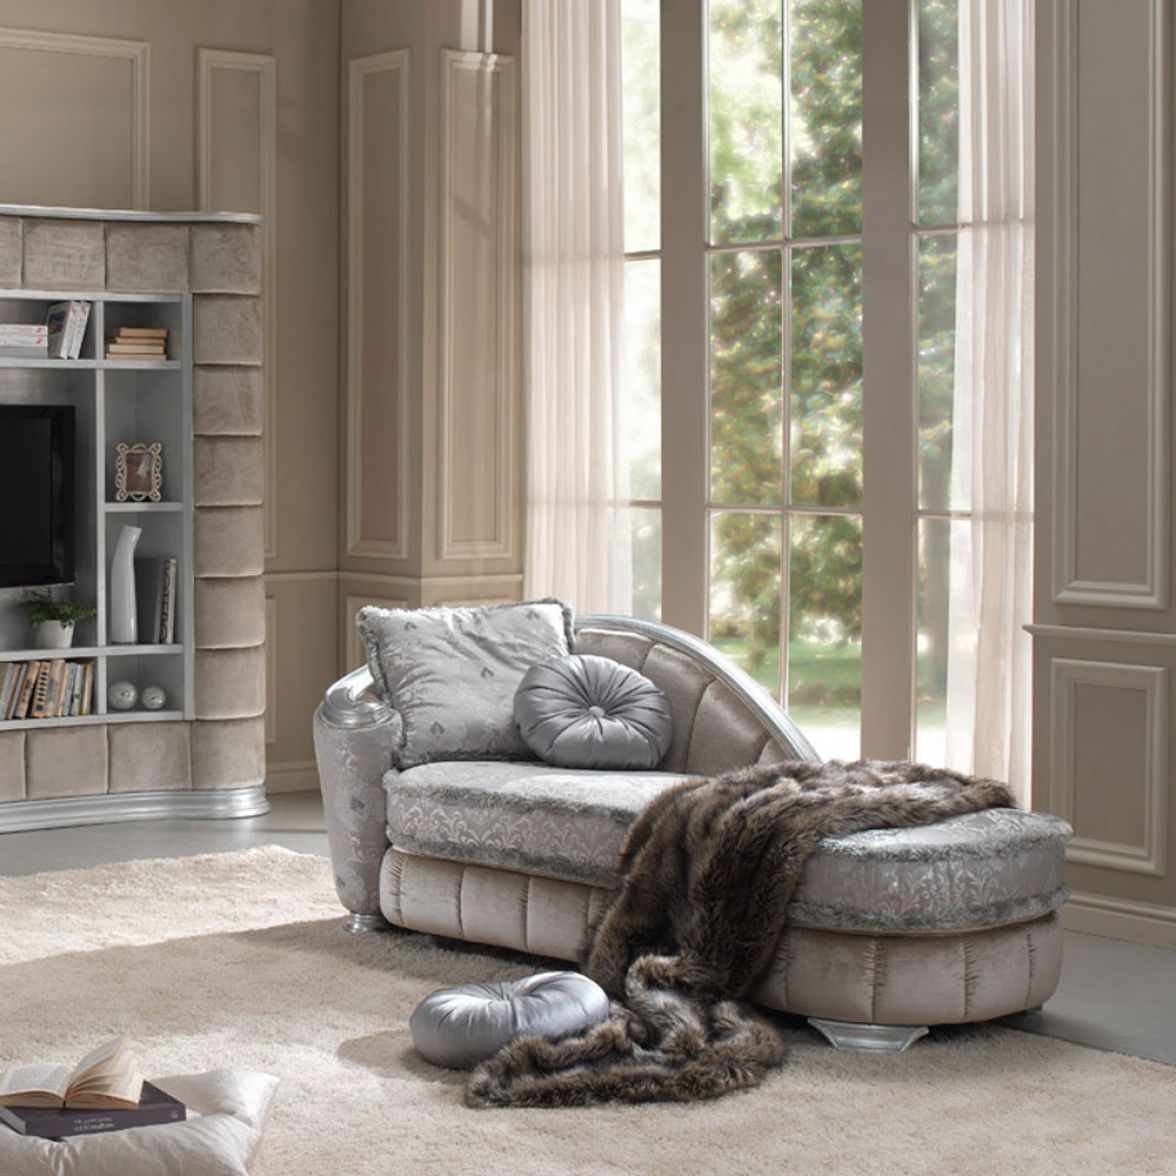 Glamour chaise longue